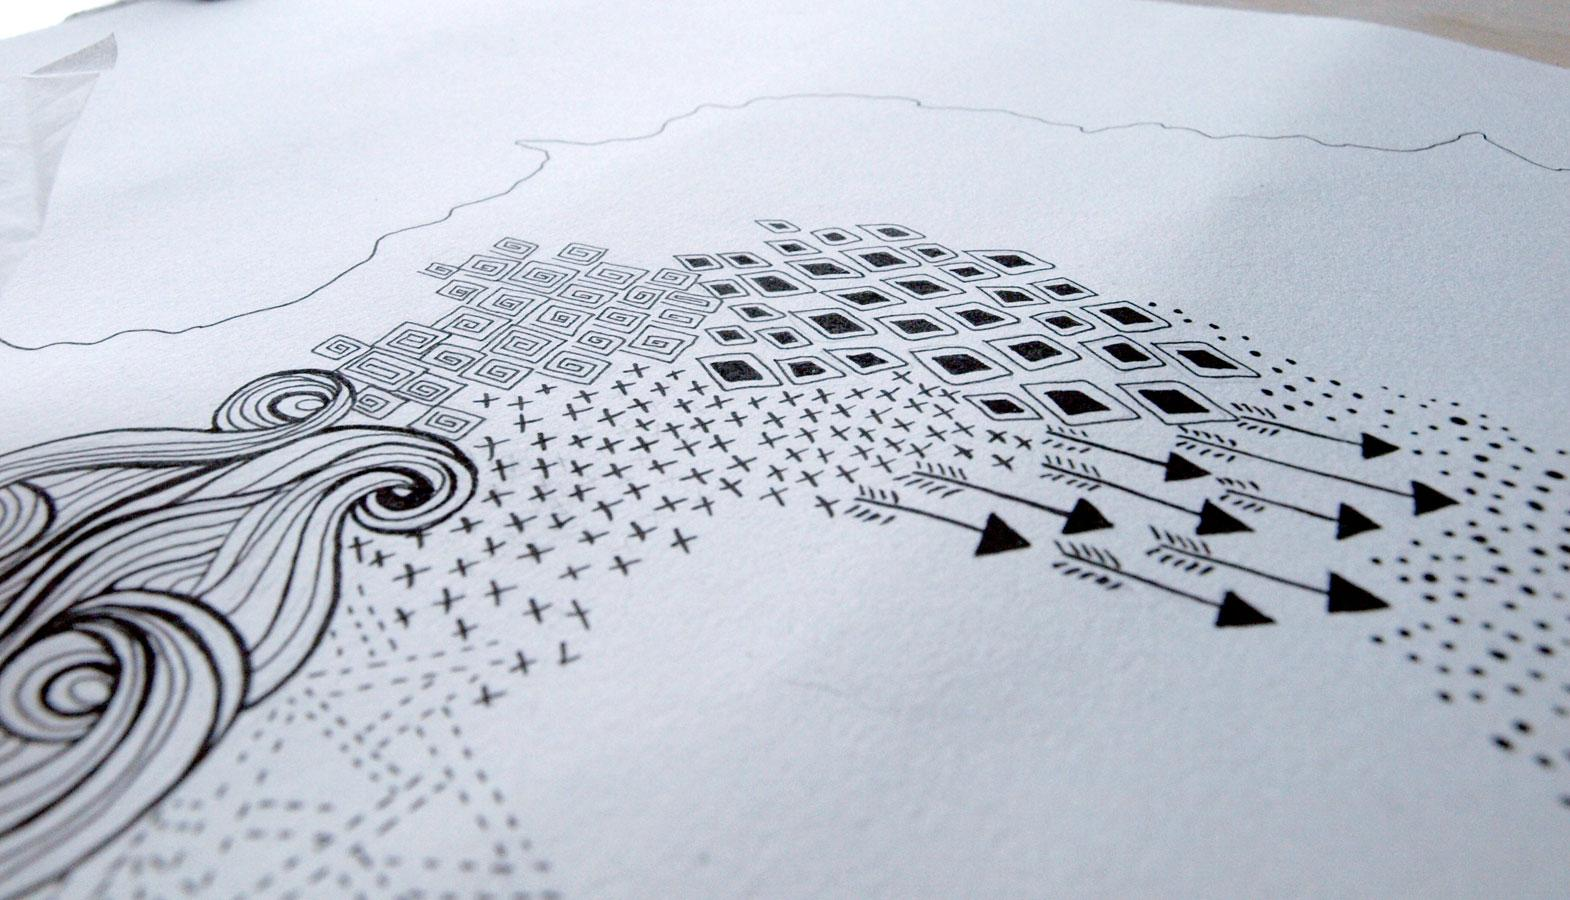 Berber Whiskey Travels: Morocco through patterns - image 6 - student project